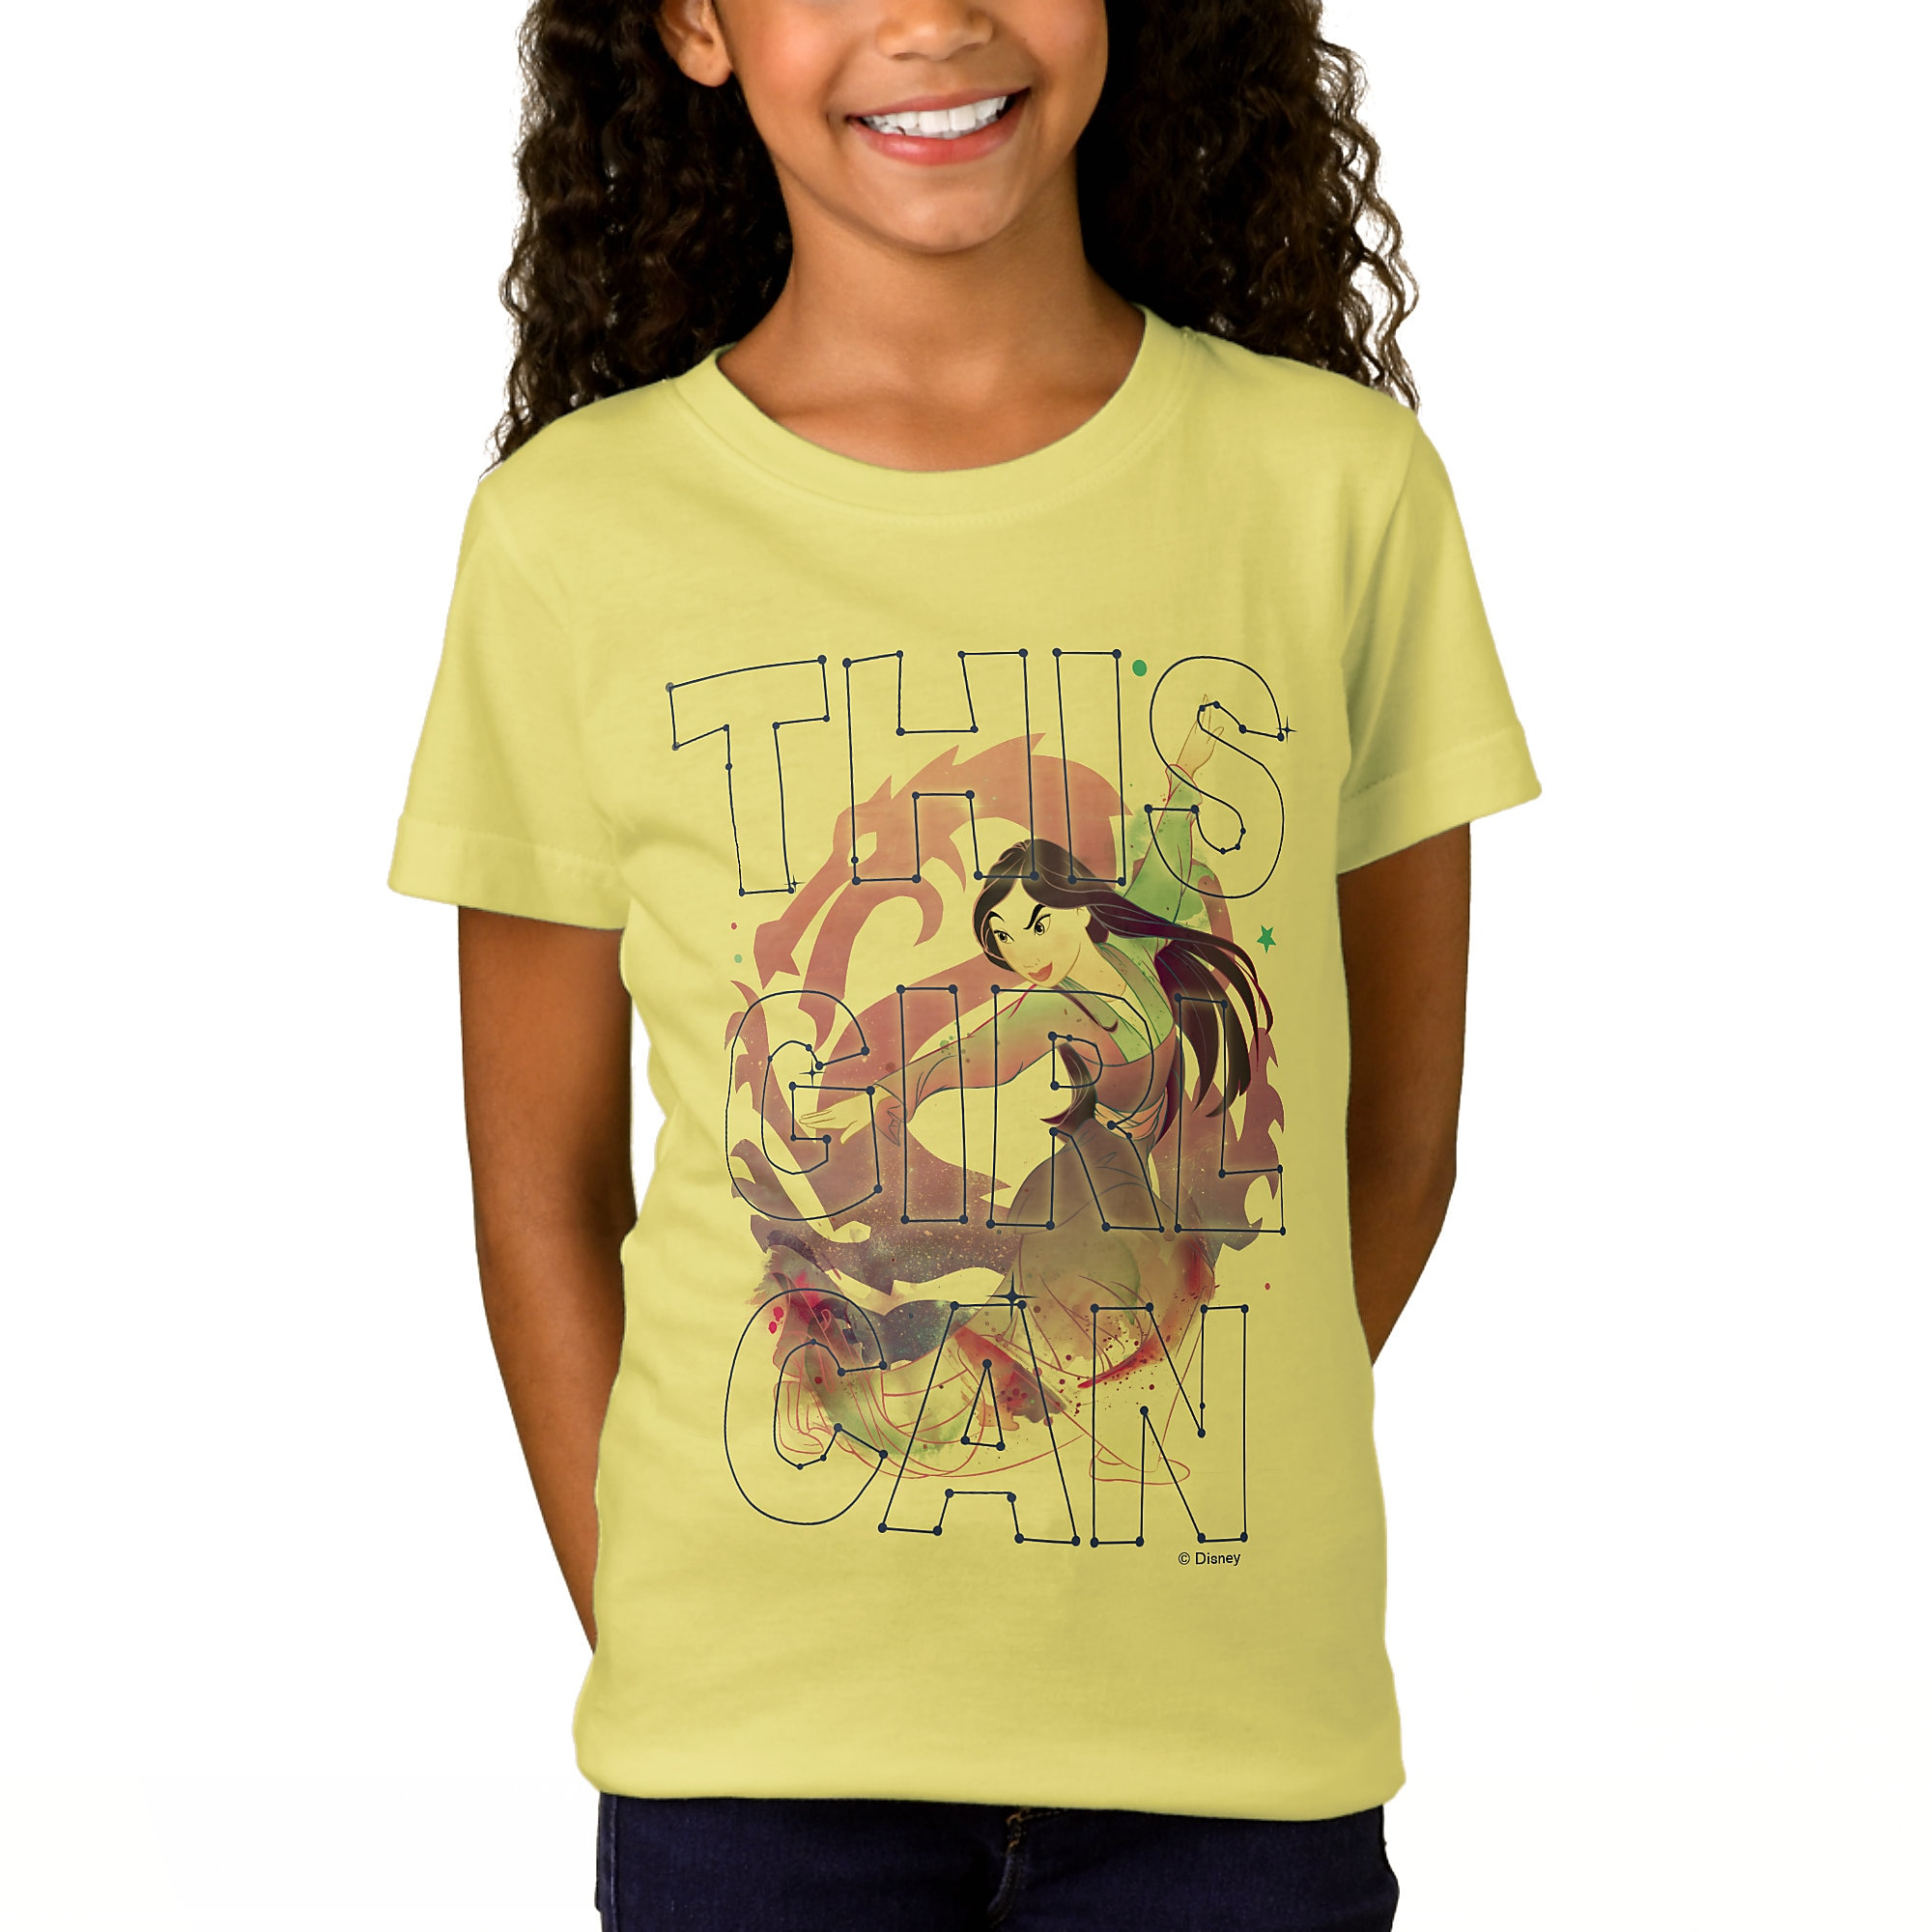 Mulan ''This Girl Can'' T-Shirt for Girls - Customizable